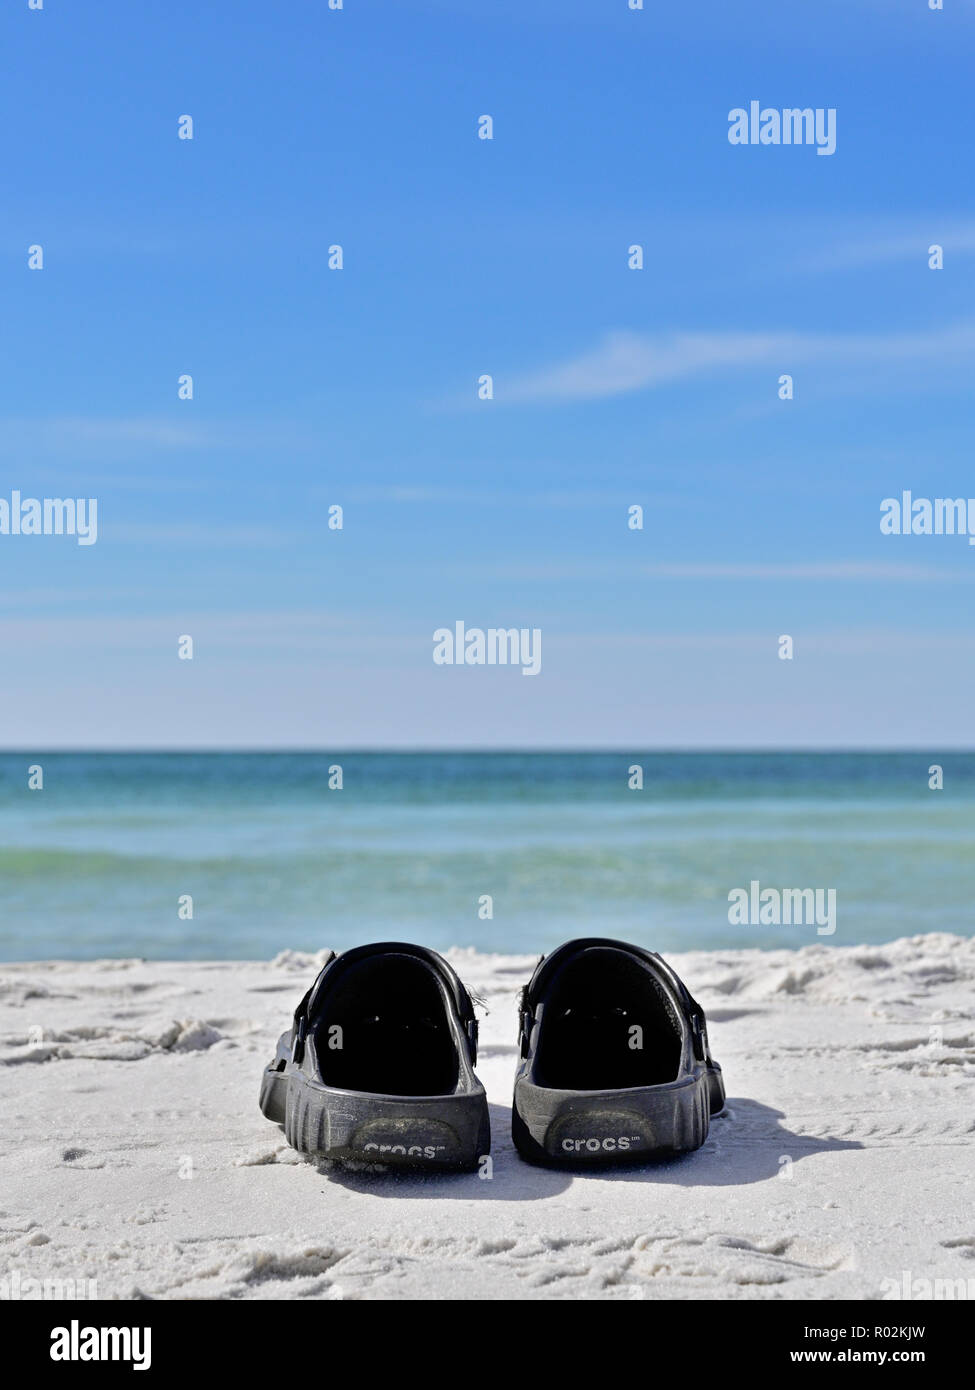 Pair of Crocks beach shoes or sandals on white Florida panhandle Gulf coast beach sand facing the Gulf of Mexico at Deer Lake State Park, Florida USA. - Stock Image